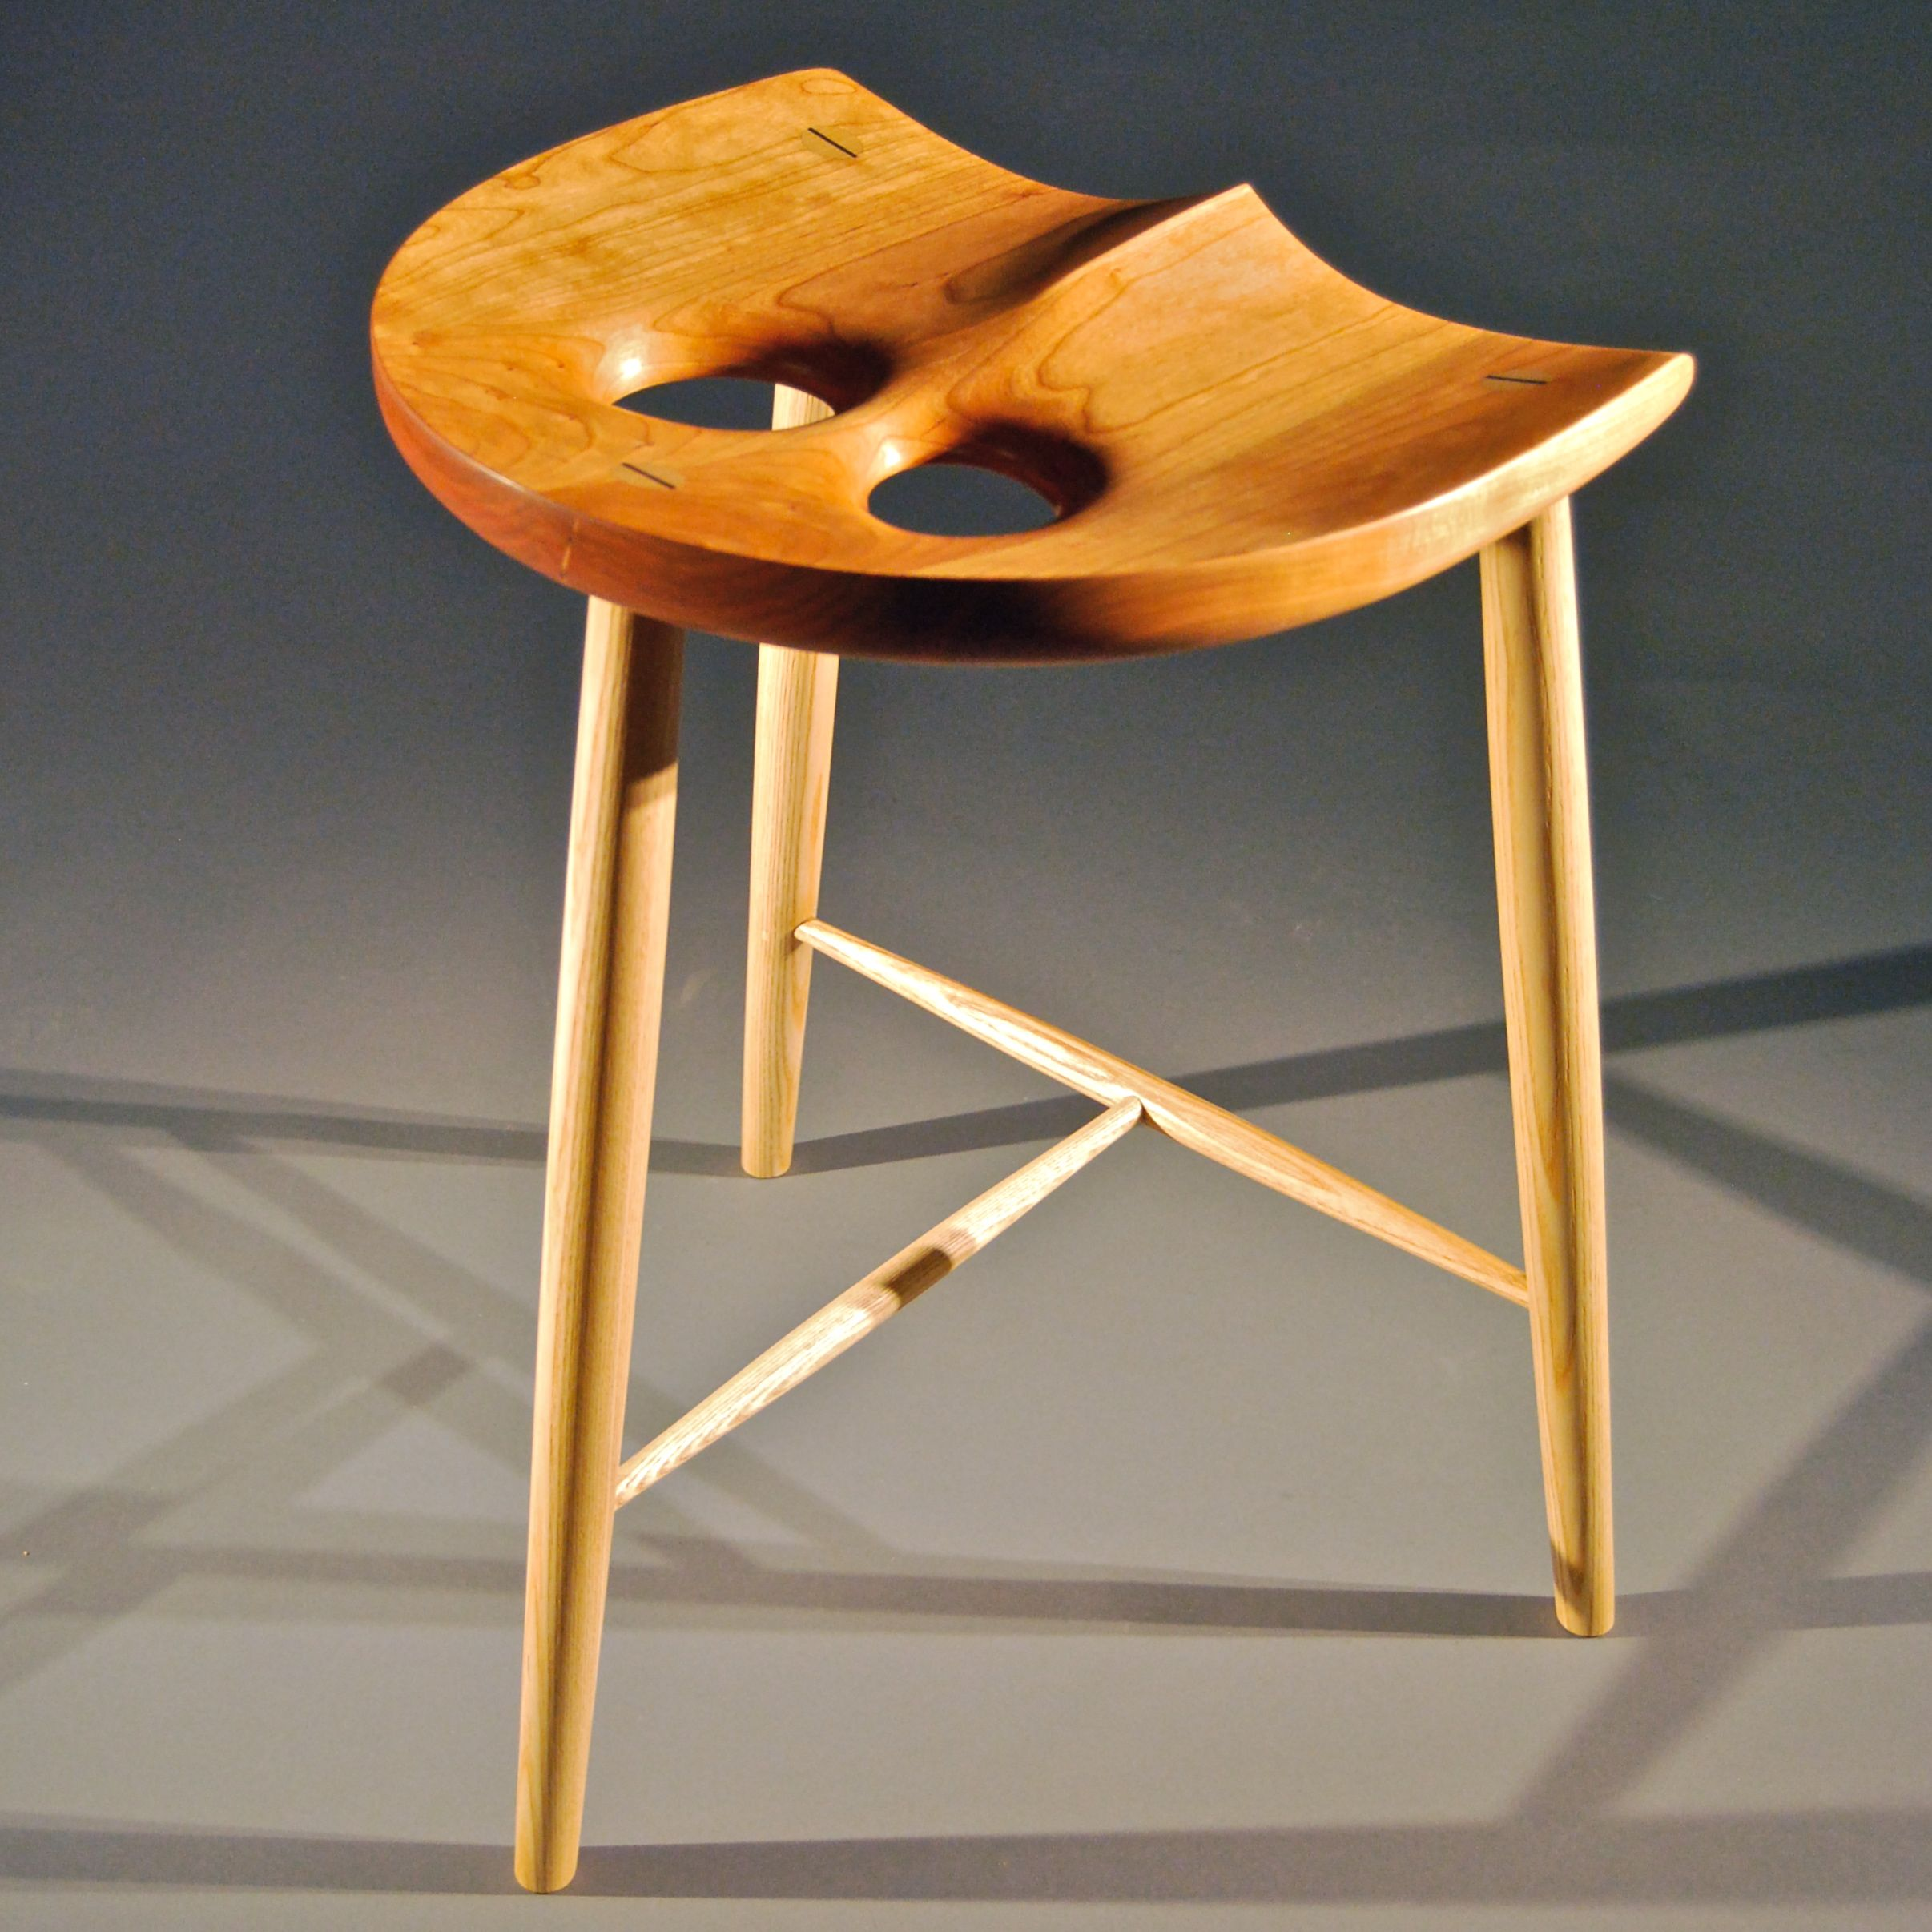 Classic Owl Ergonomic Handcrafted Wooden Stool Furniture Stool